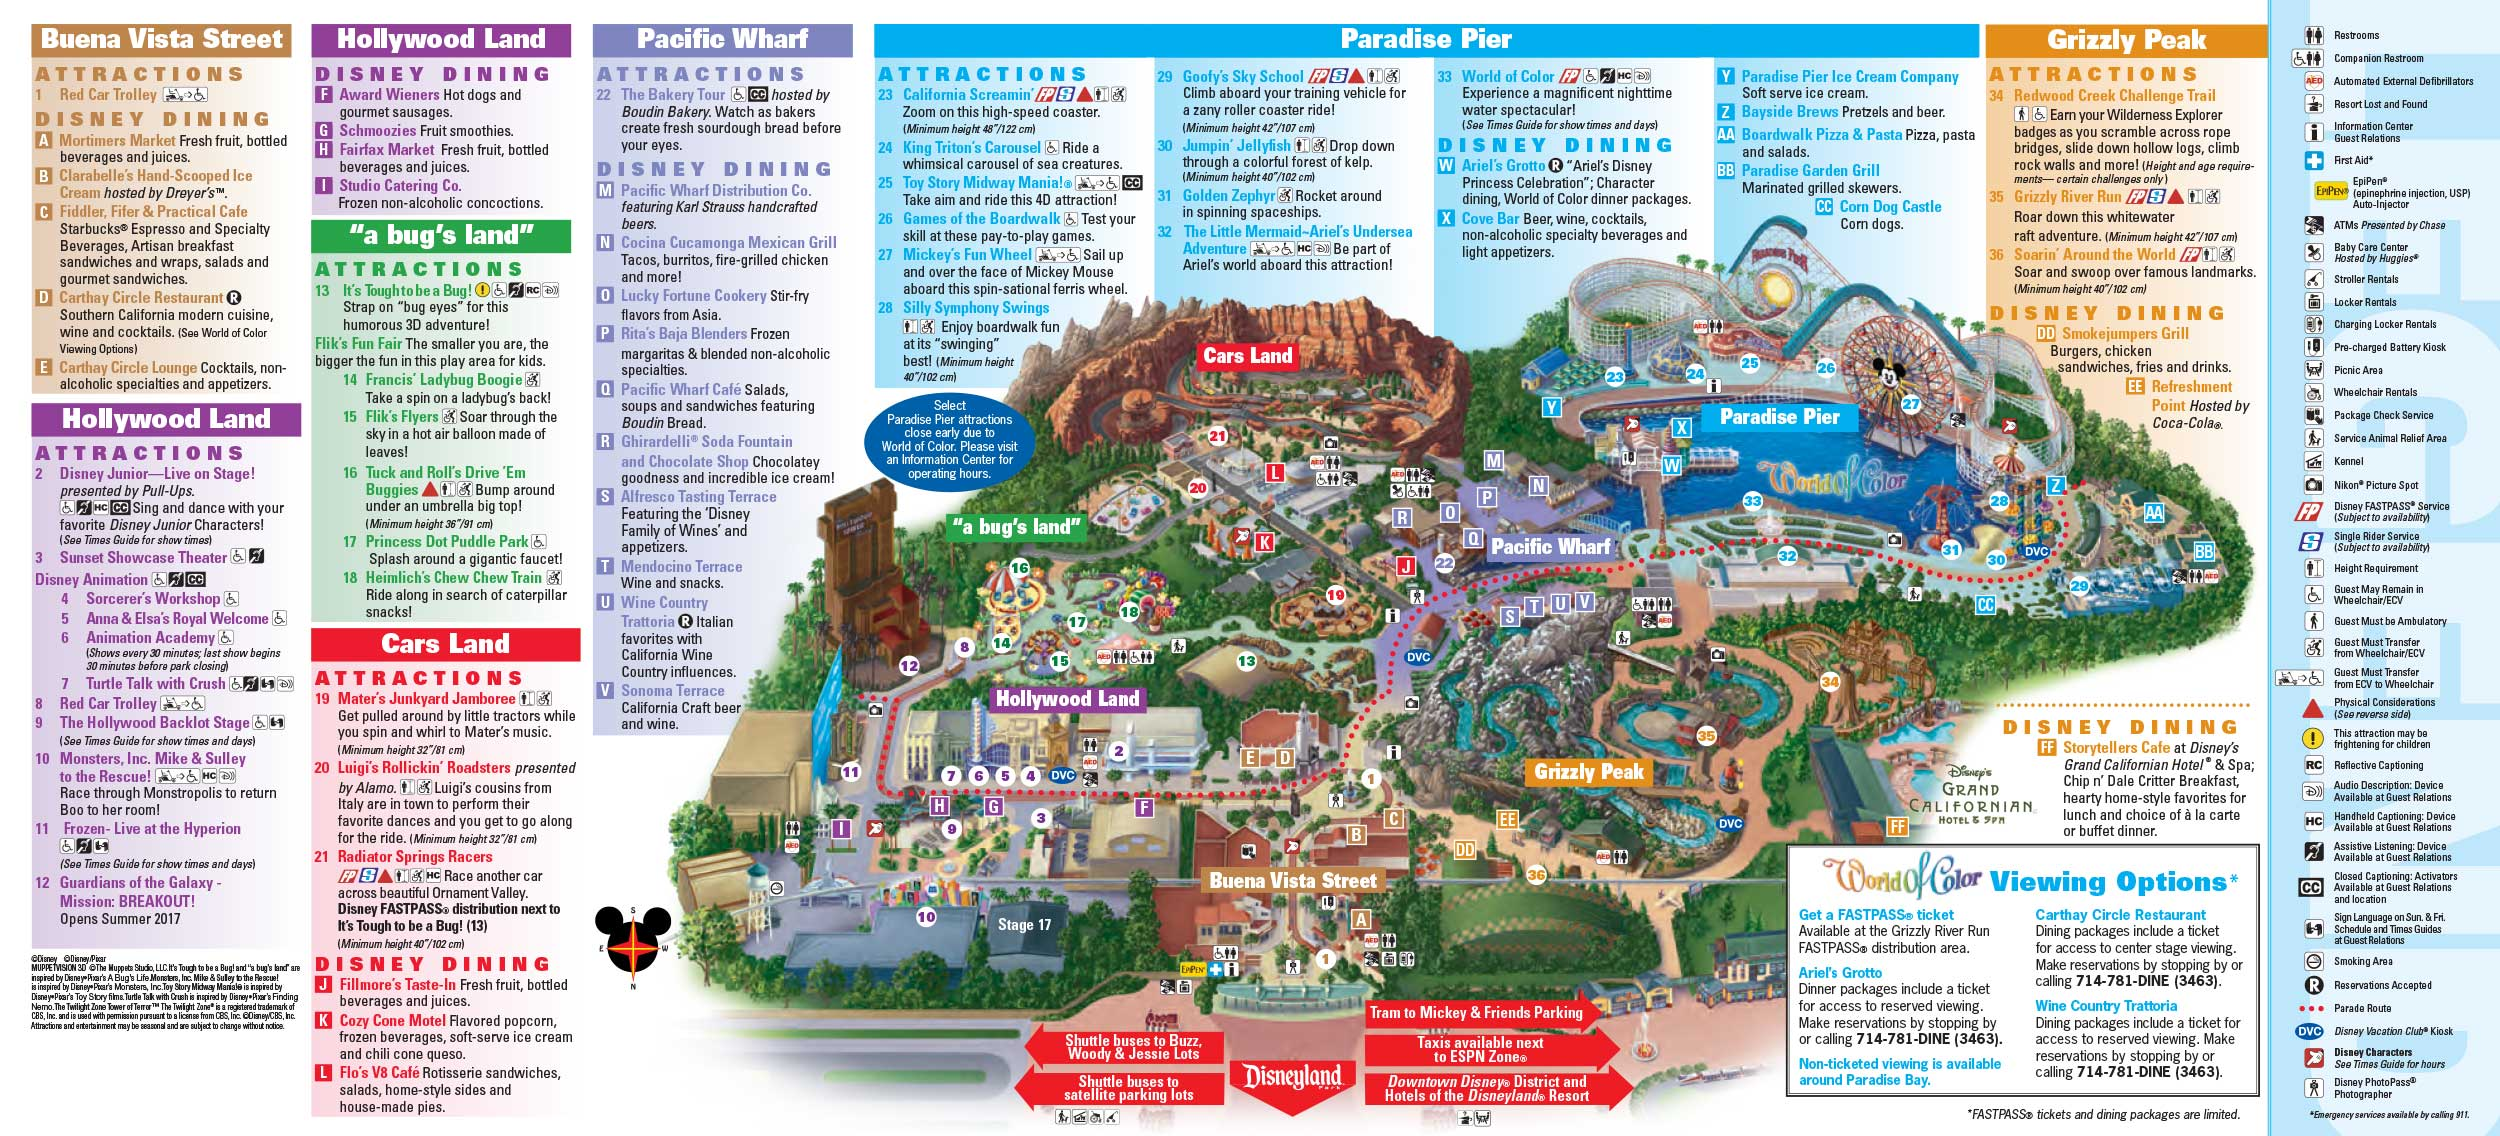 Disneyland Park Map In California Map Of Disneyland - Map of califirnia